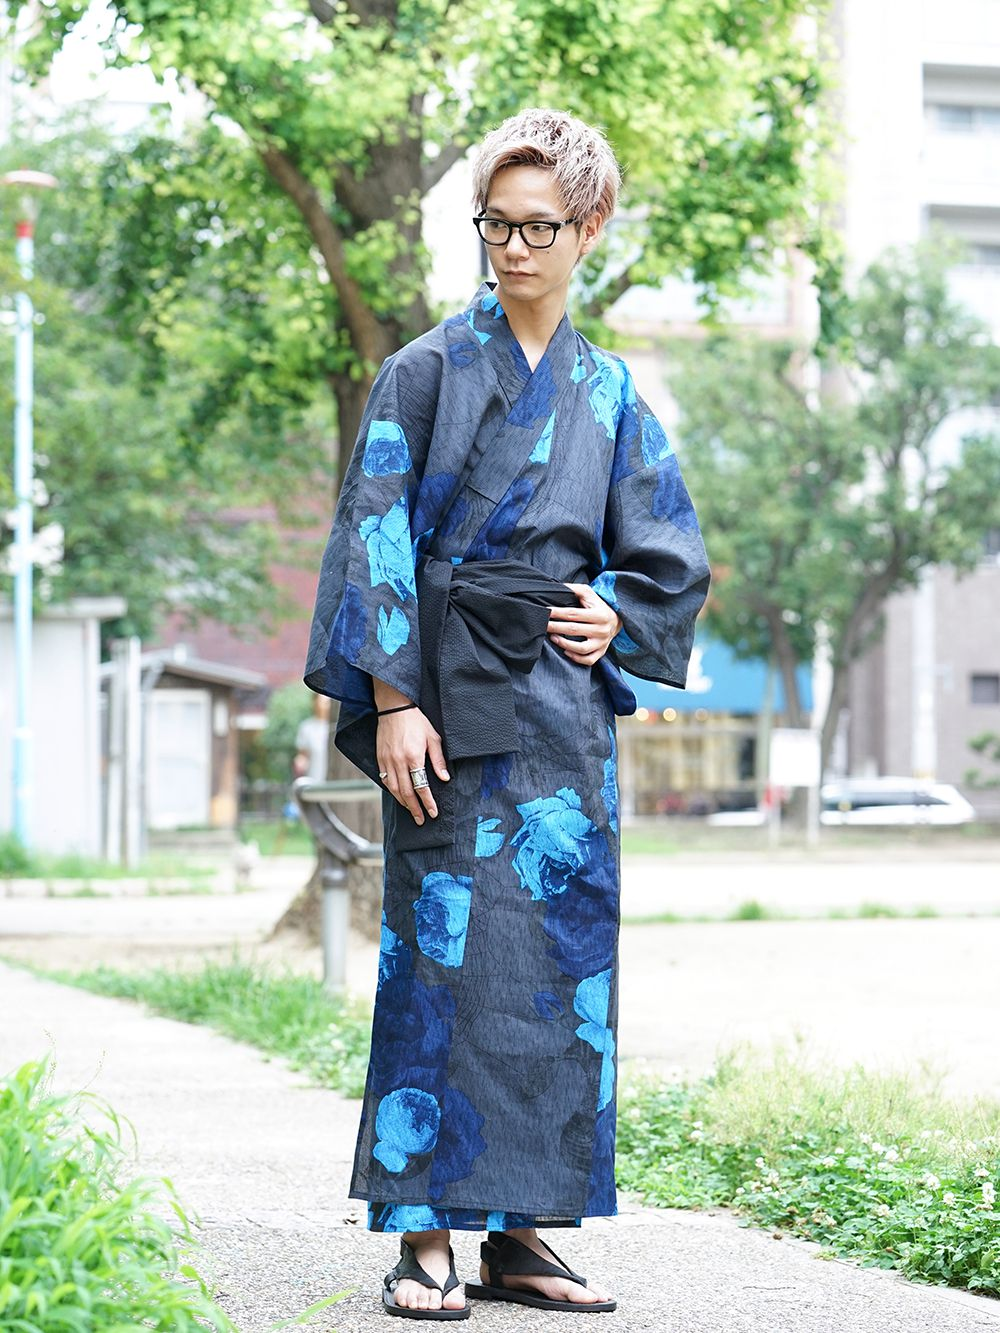 DIET BUTCHER SLIM SKIN 【YUKATA】 - 1-004